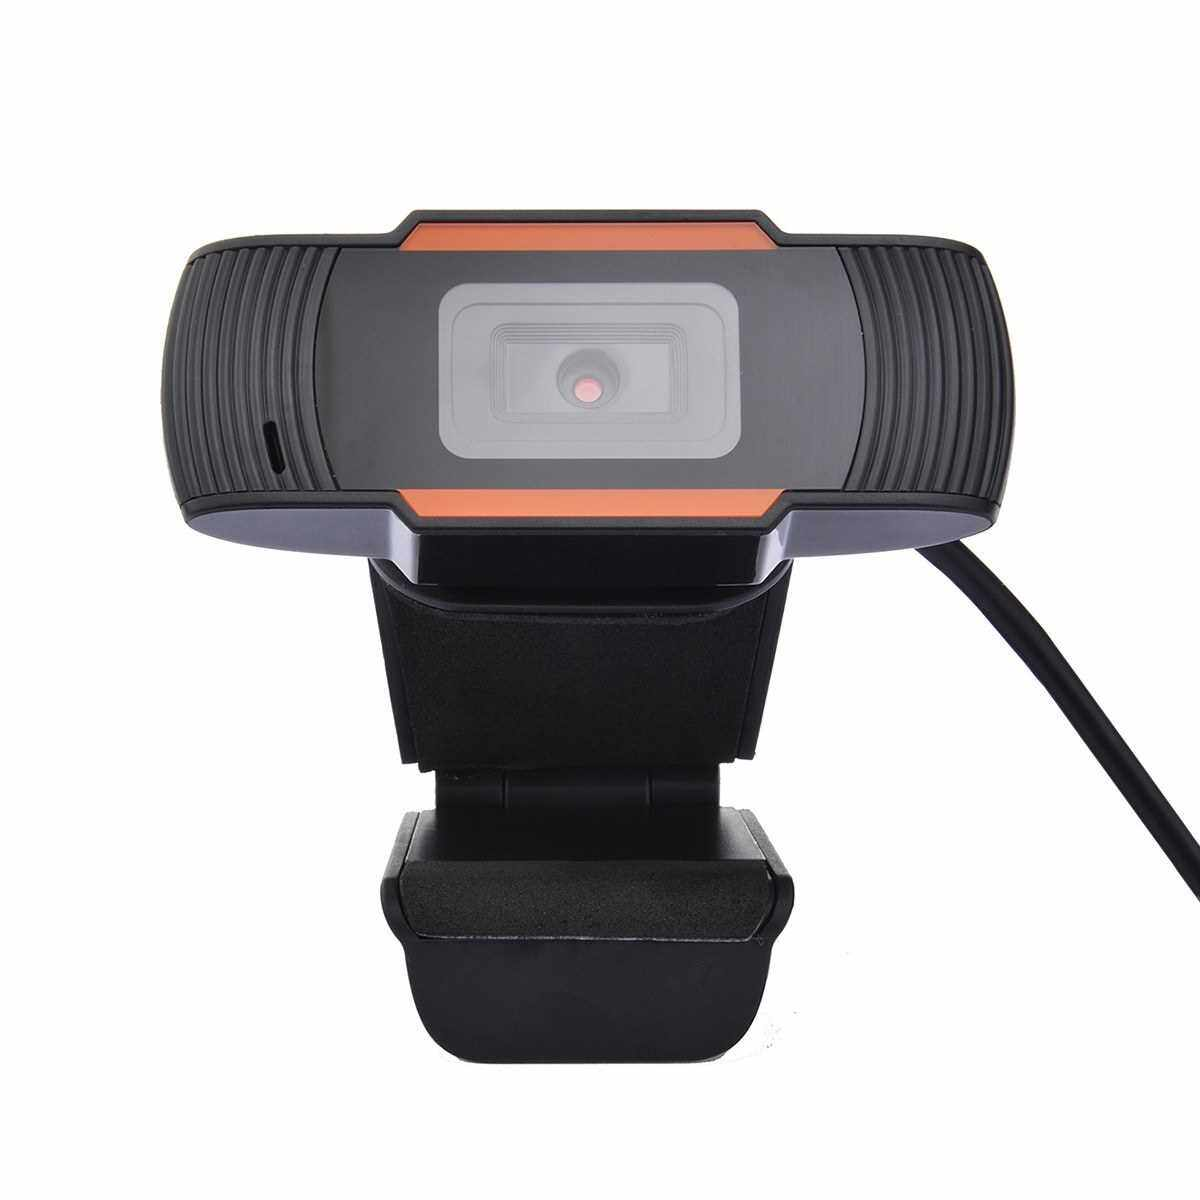 Best Selling USB Webcam Video Camera 2MP 1080P High-definition HD Camera Plug and Play Camera Autofocus with Noise Cancelling Microphone for Computers Laptop (2)